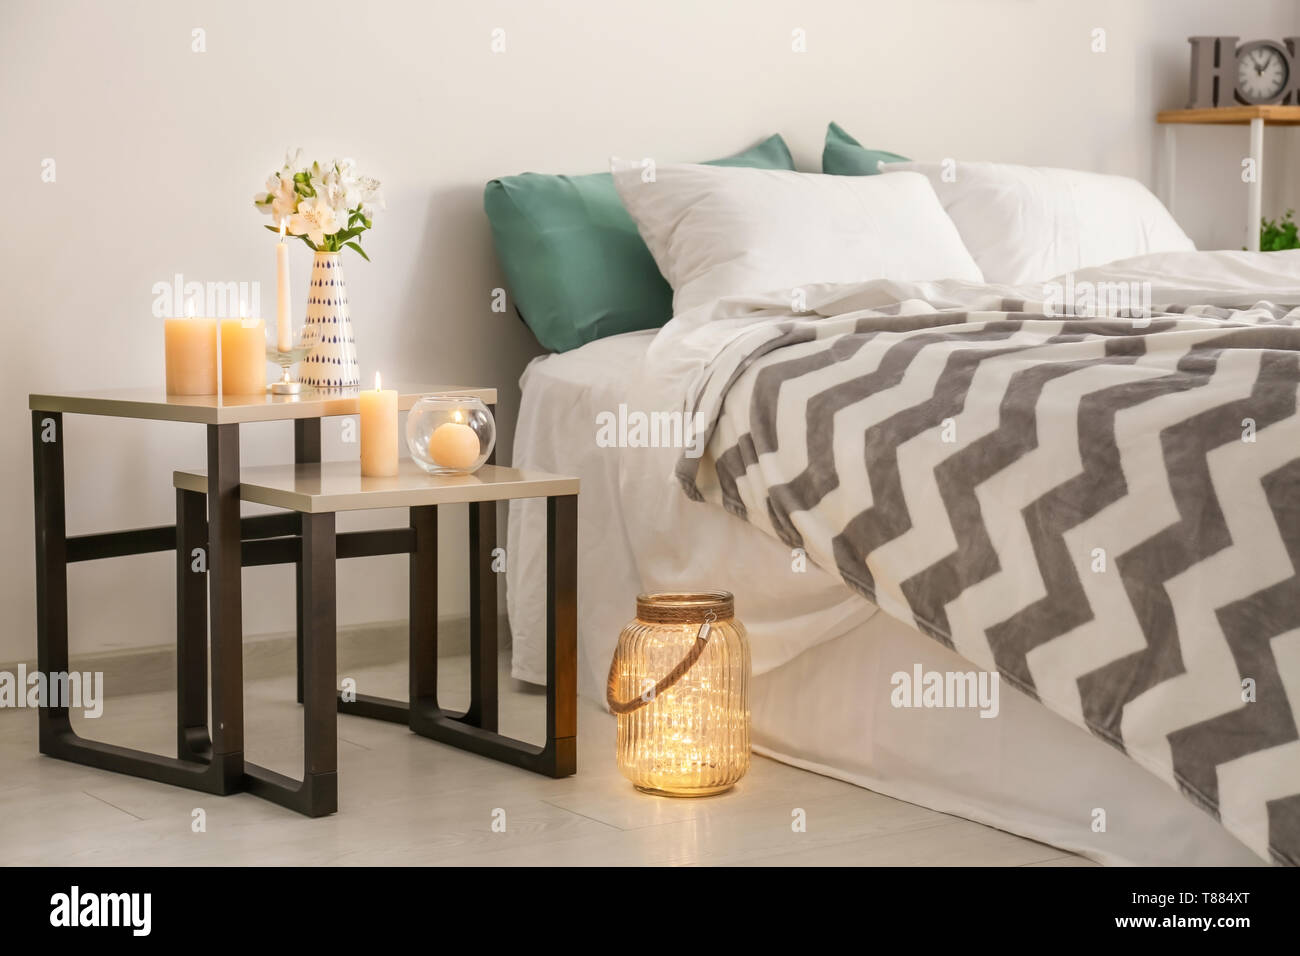 Bedroom Candles High Resolution Stock Photography And Images Alamy